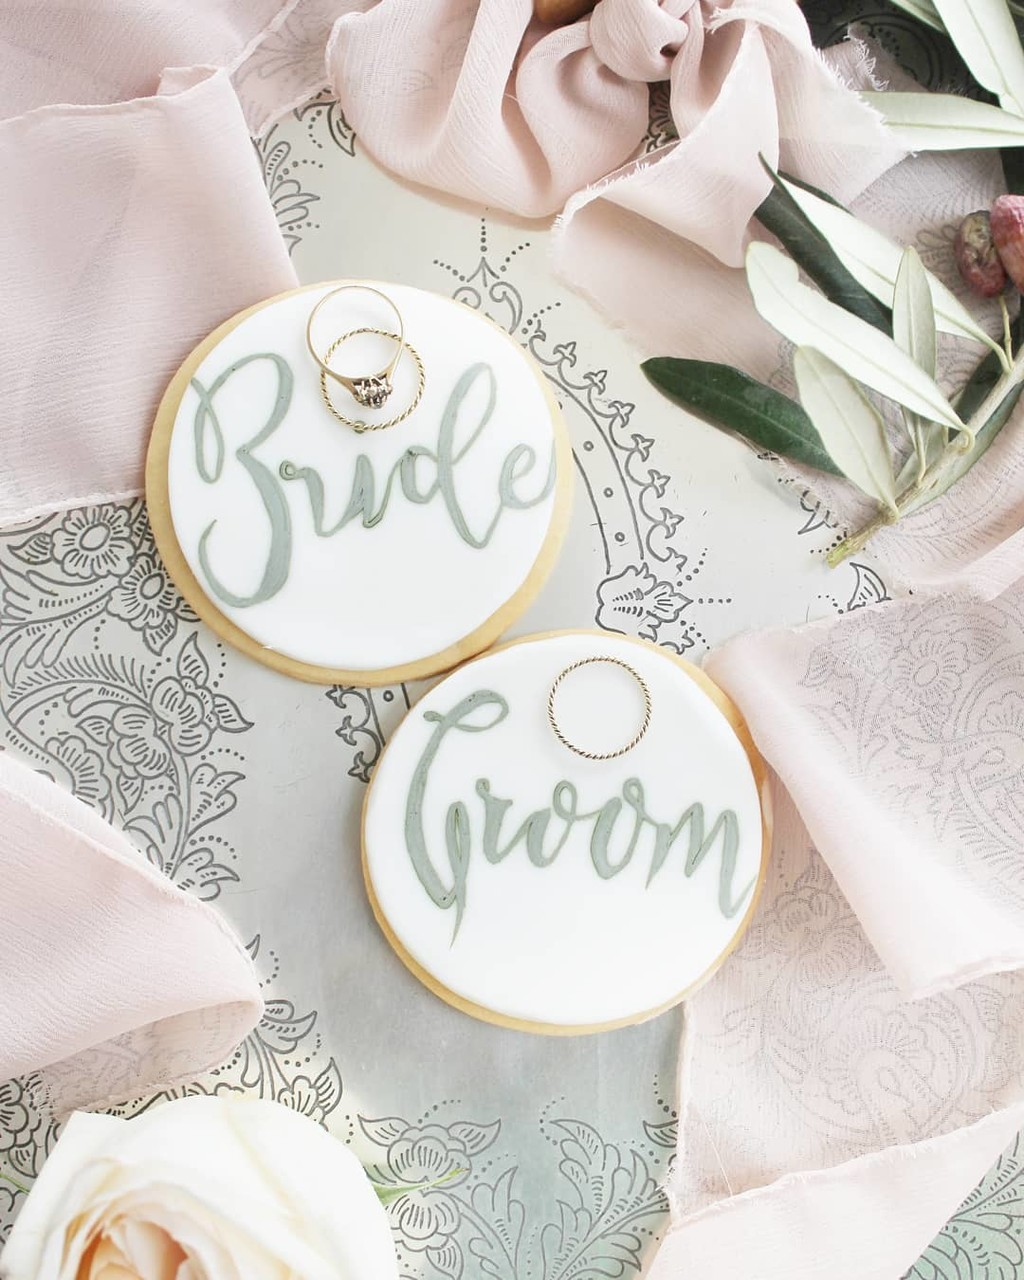 ▪Take a treat love is sweet, can you see it? Hand painted wedding cookies for a lovely couple can make the difference on their special